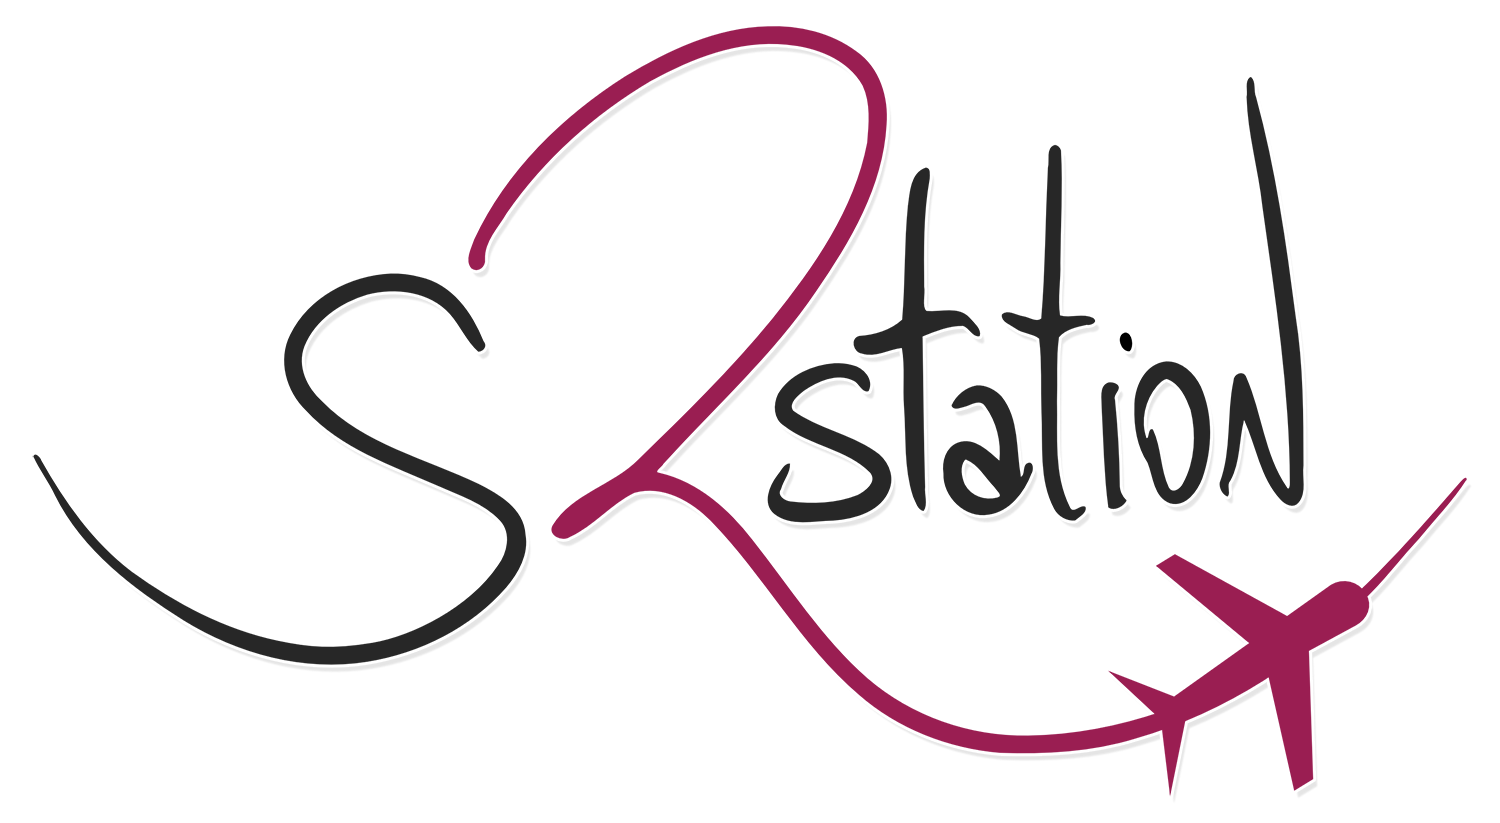 Logo do S2Station